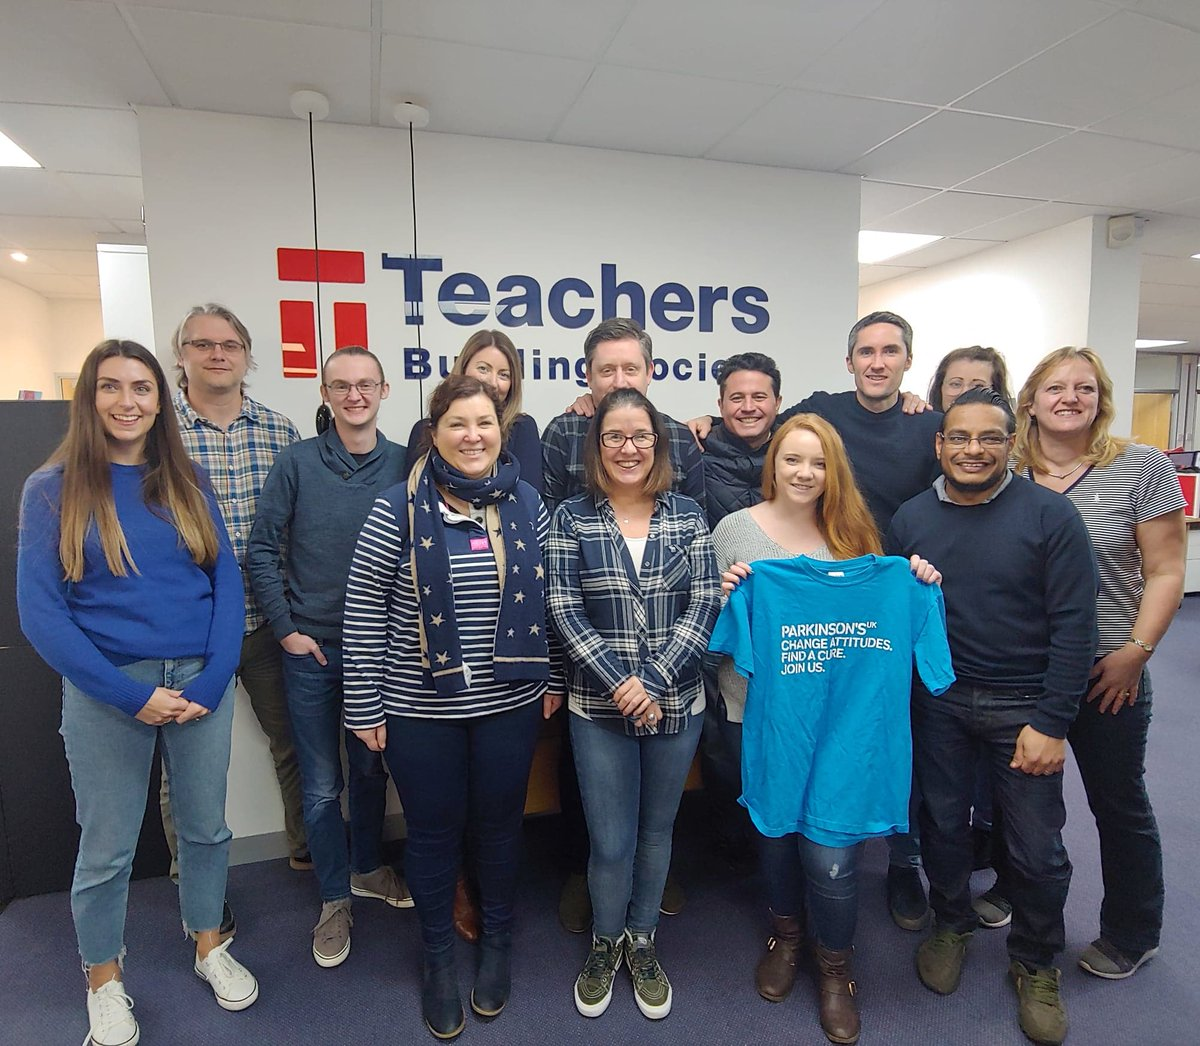 We're blue (da ba dee da ba daa) today at TBS HQ to raise money for @ParkinsonsUK! Great team effort for an amazing cause. Happy Friday all! 💙👖👗🐬🌊🌧 #happyfriday #parkinsonsuk #charity #mufti #blue #smurfs #teachersbuildingsociety